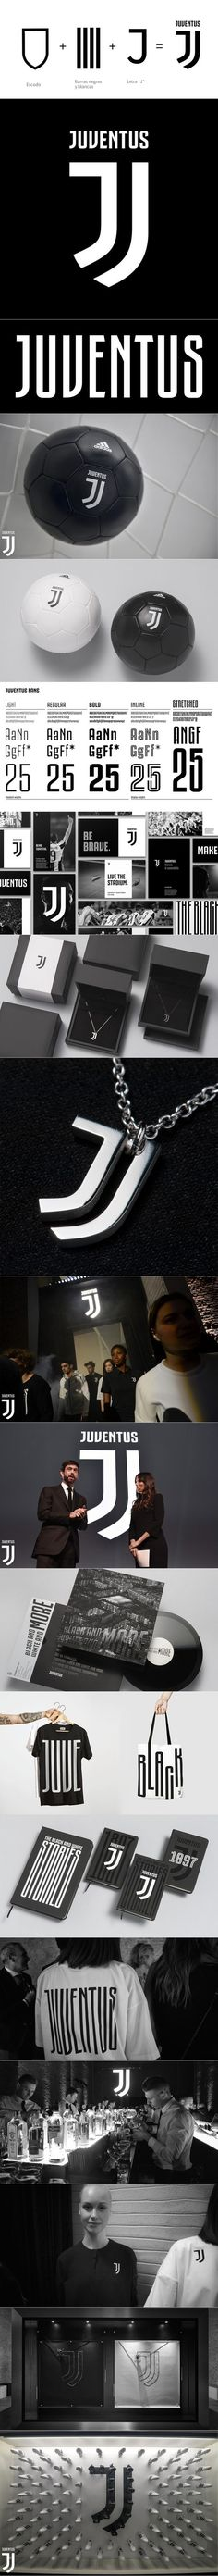 Juventus branding by Interbrand (Milan Office)